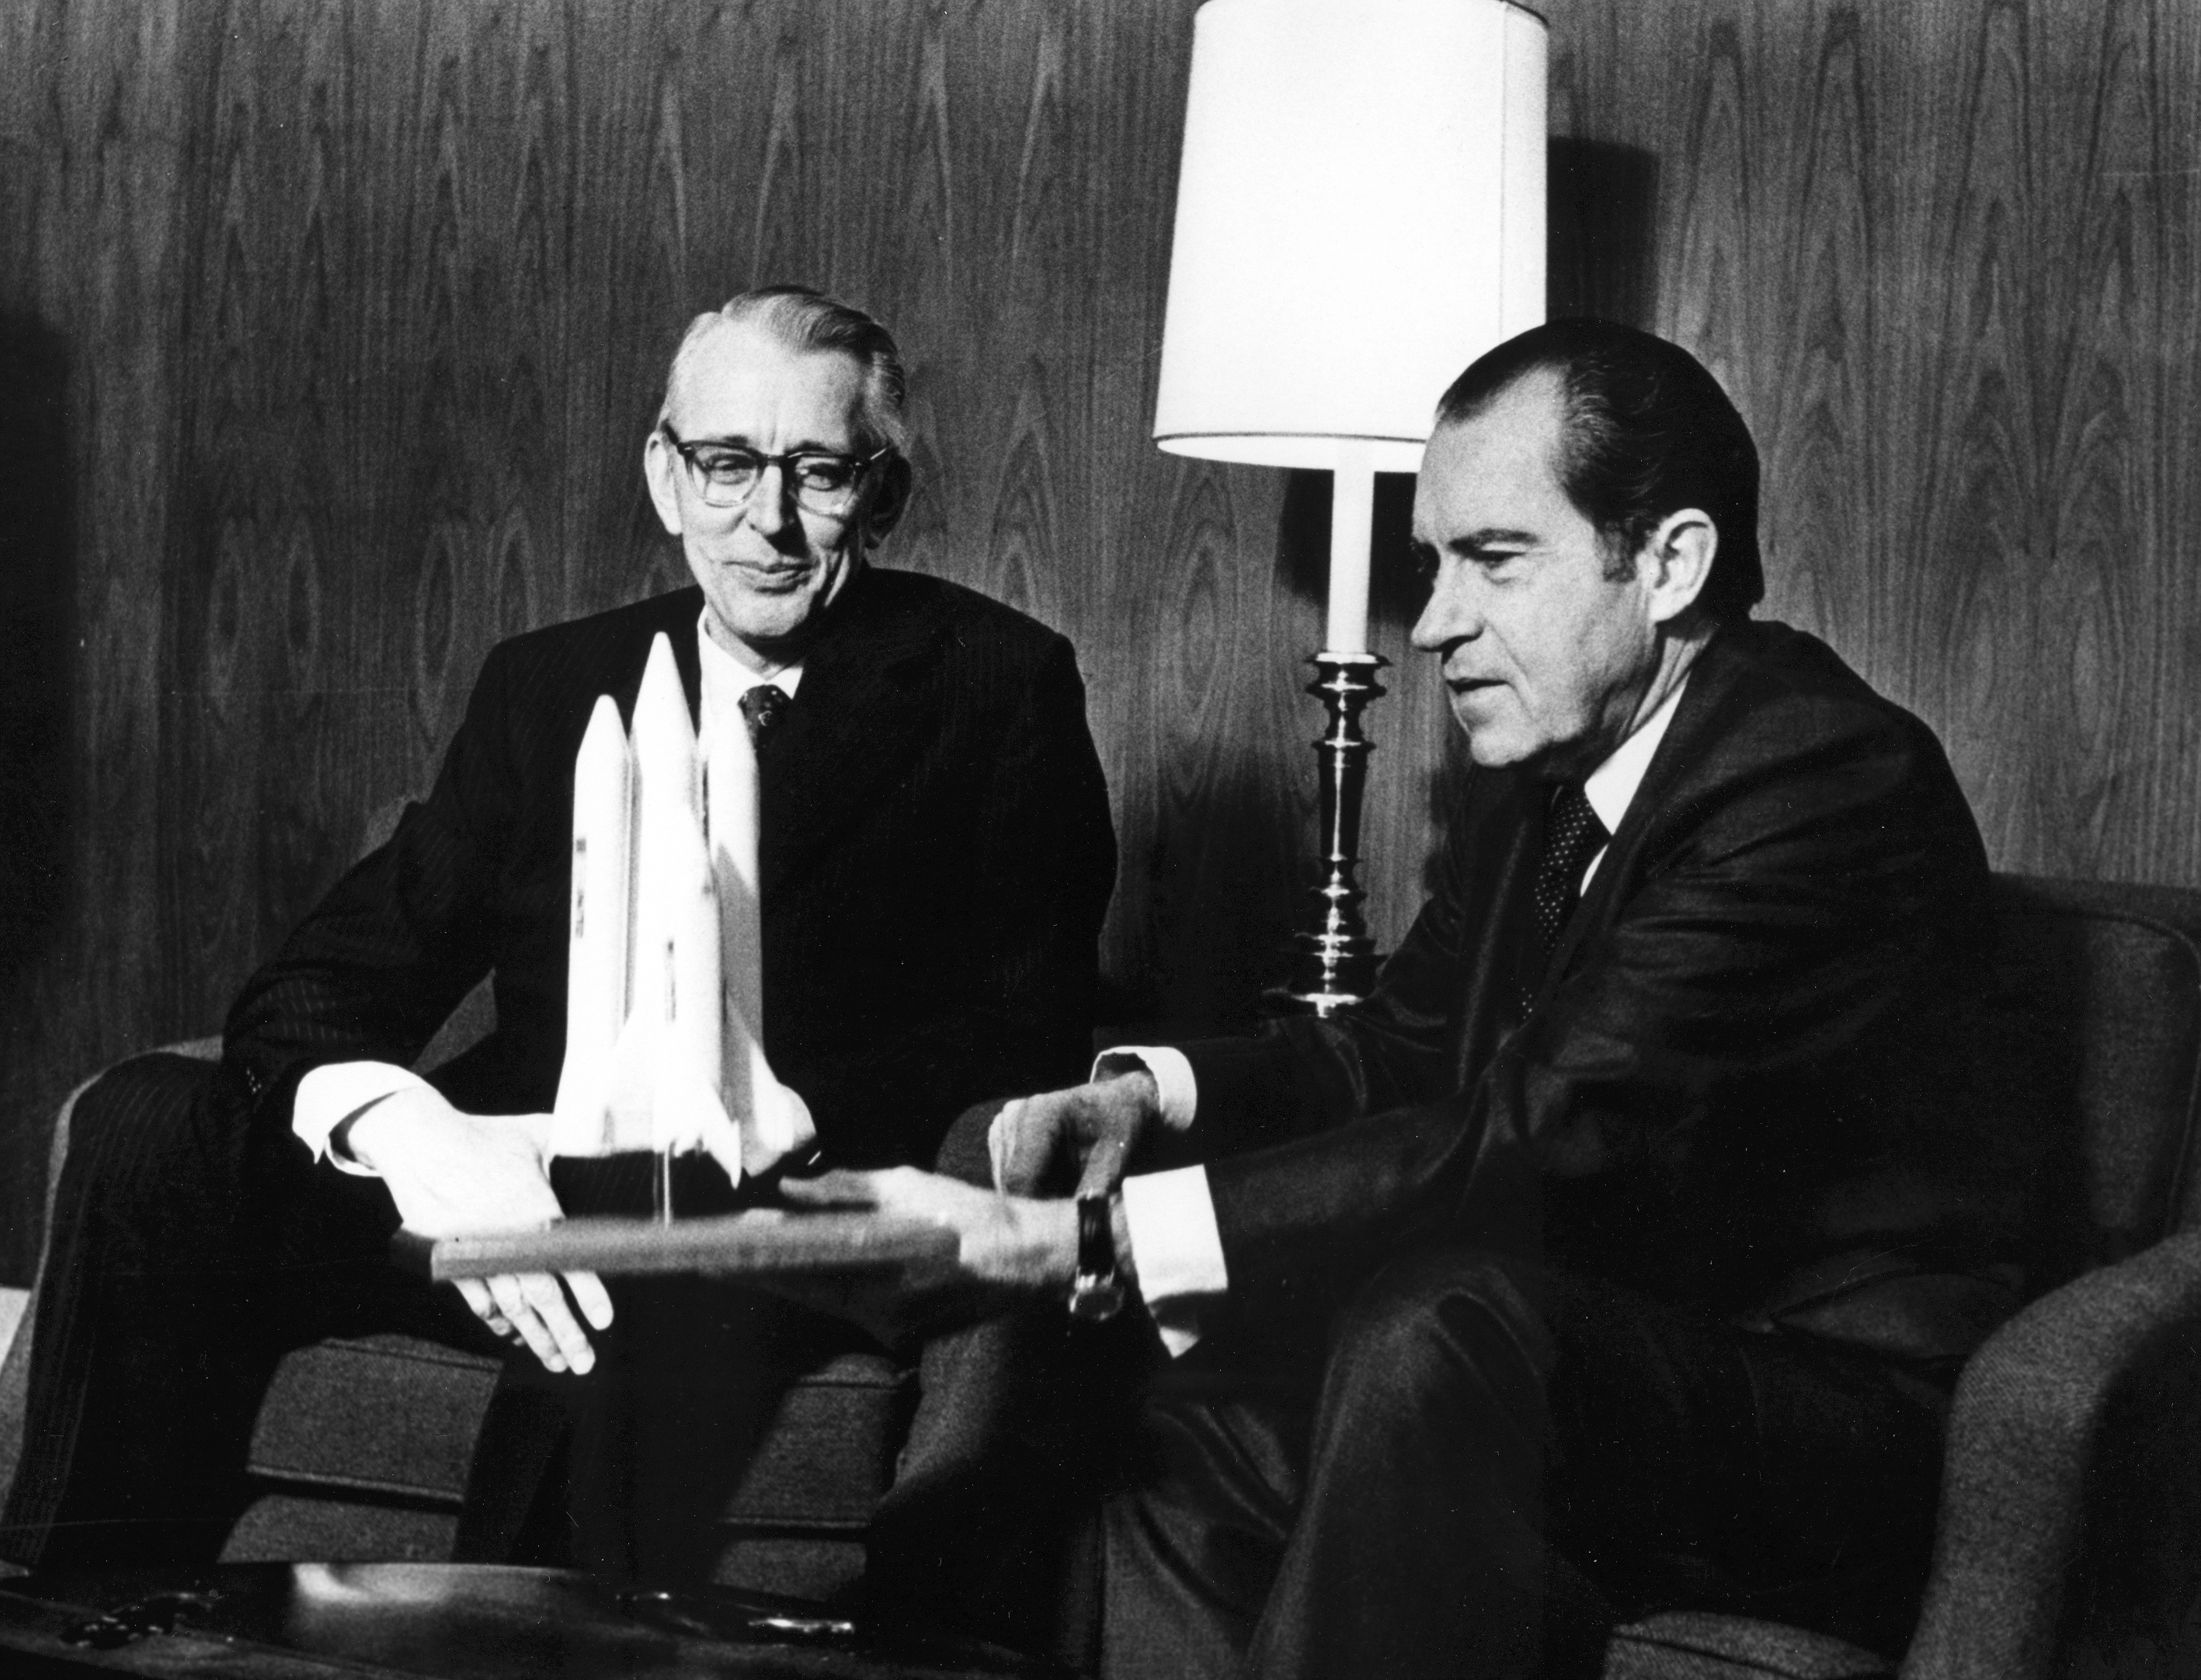 http://upload.wikimedia.org/wikipedia/commons/0/0c/President_Nixon_and_James_Fletcher_Discuss_the_Space_Shuttle_-_GPN-2002-000109.jpg